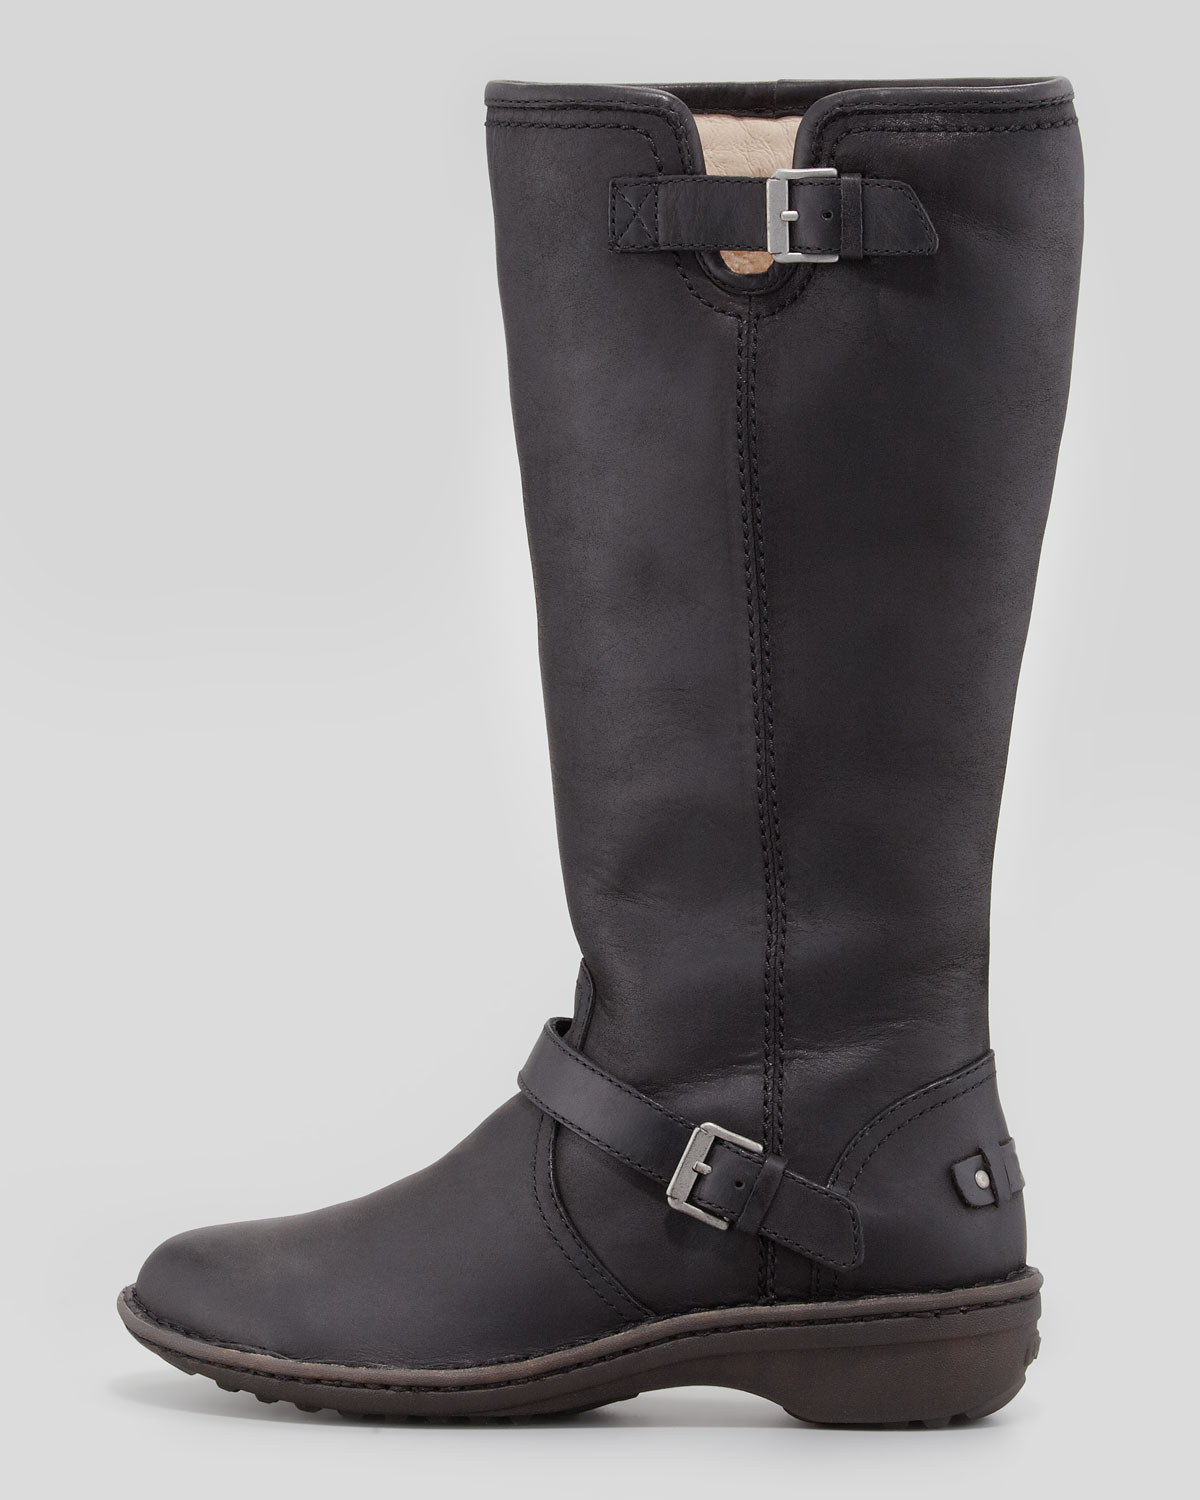 Ugg Tupelo Tall Leather Boot Black in Black | Lyst